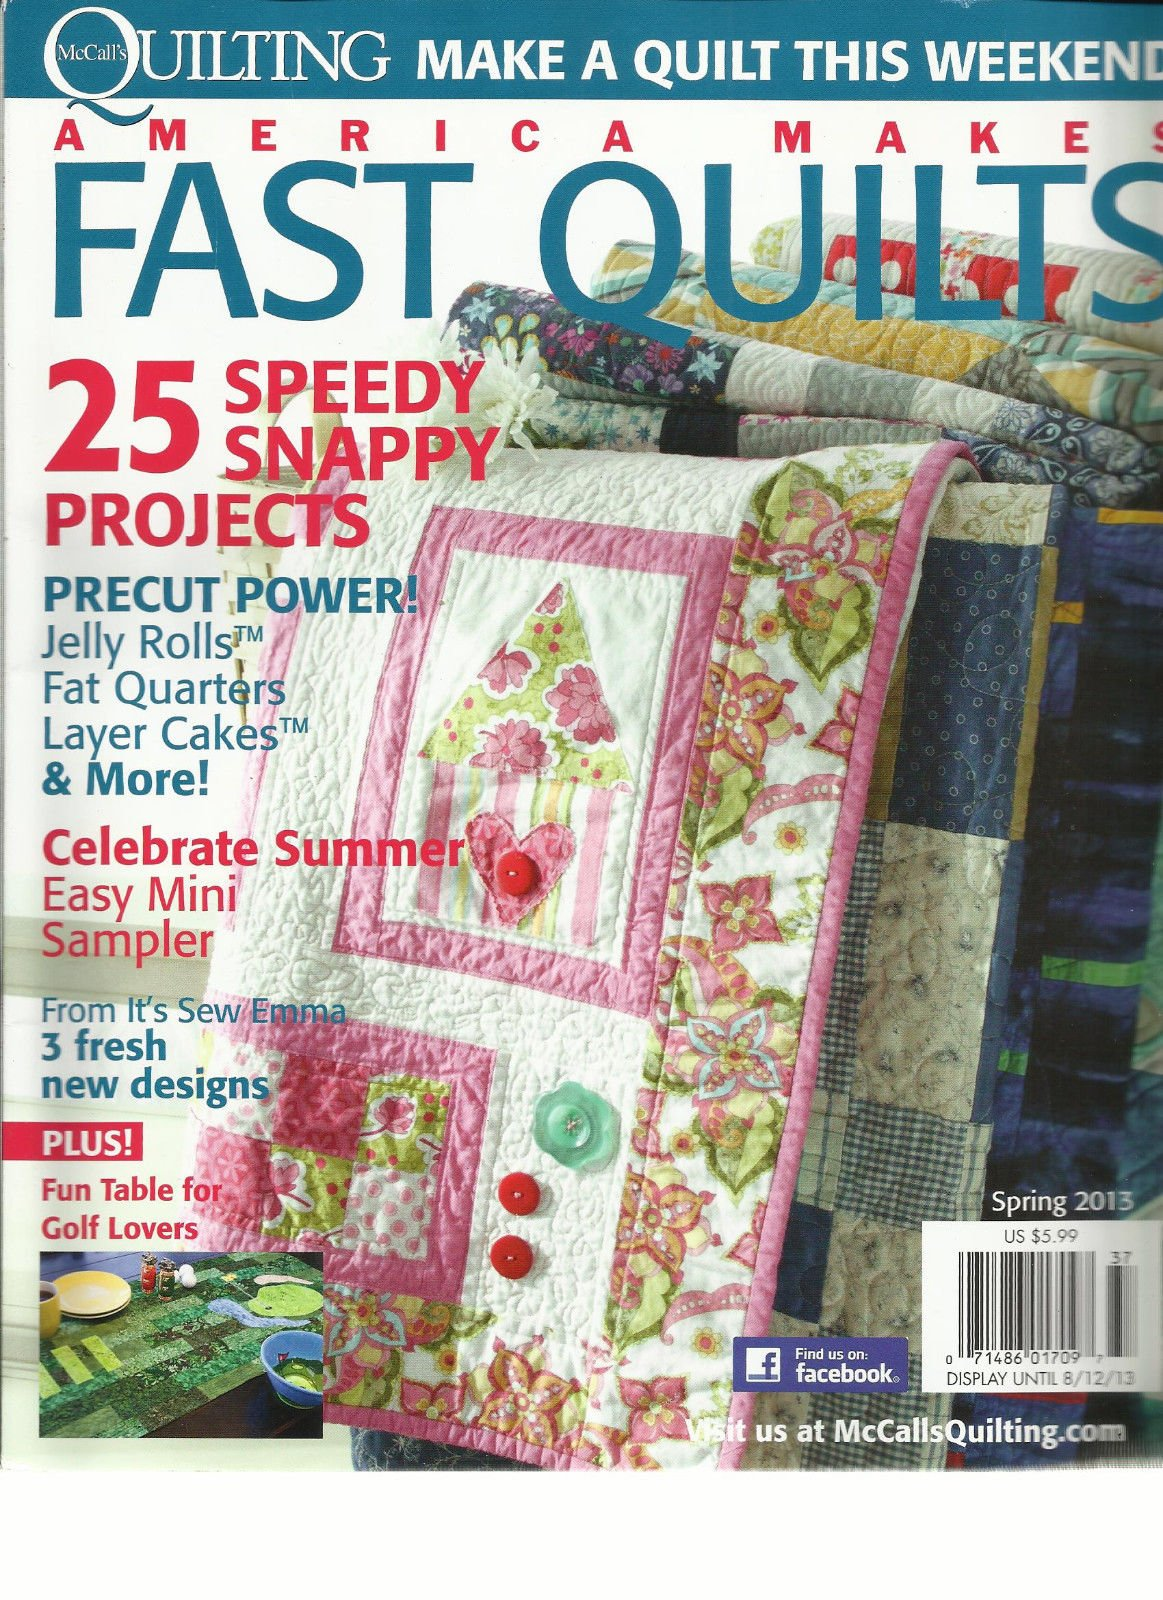 AMERICA MAKES FAST QUILTS, SPRING, 2013 (QUILTING MAKE A QUILT THIS WEEKEND)